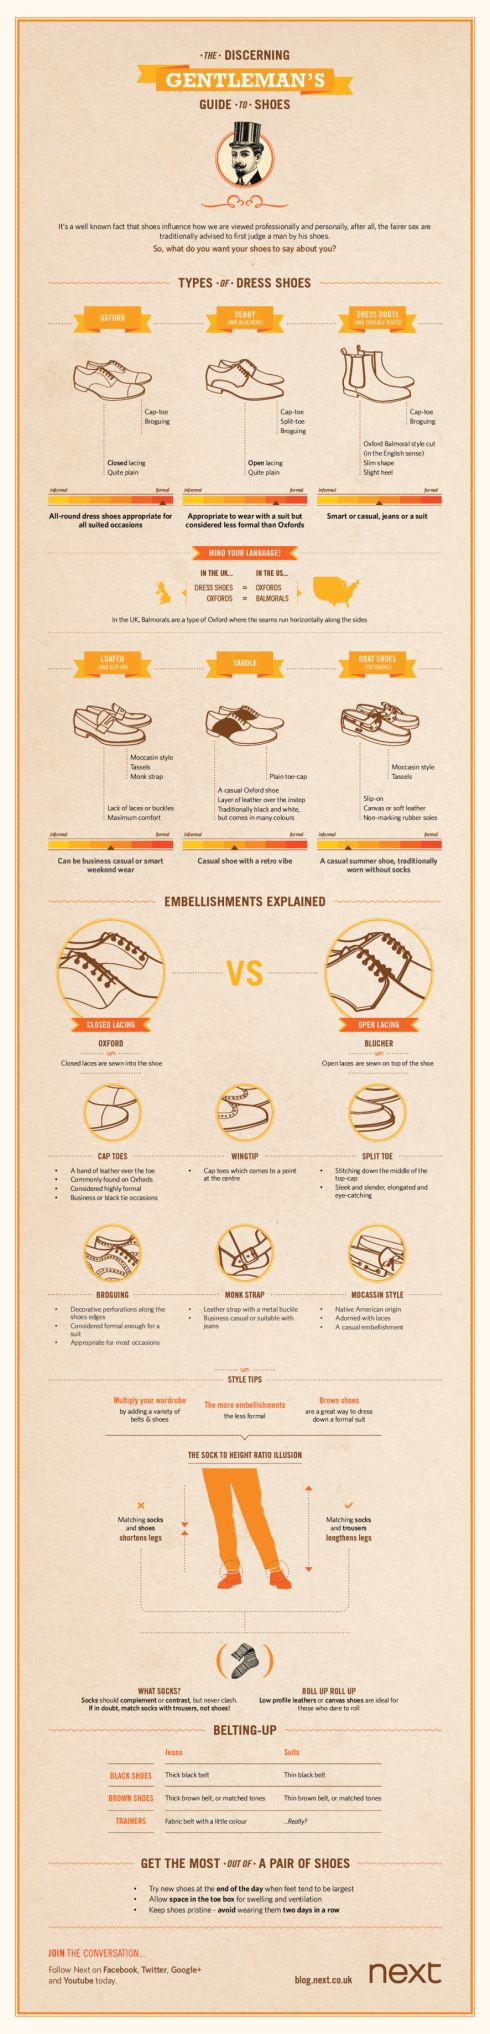 The discerning gentñeman's guide of shoes #infographic